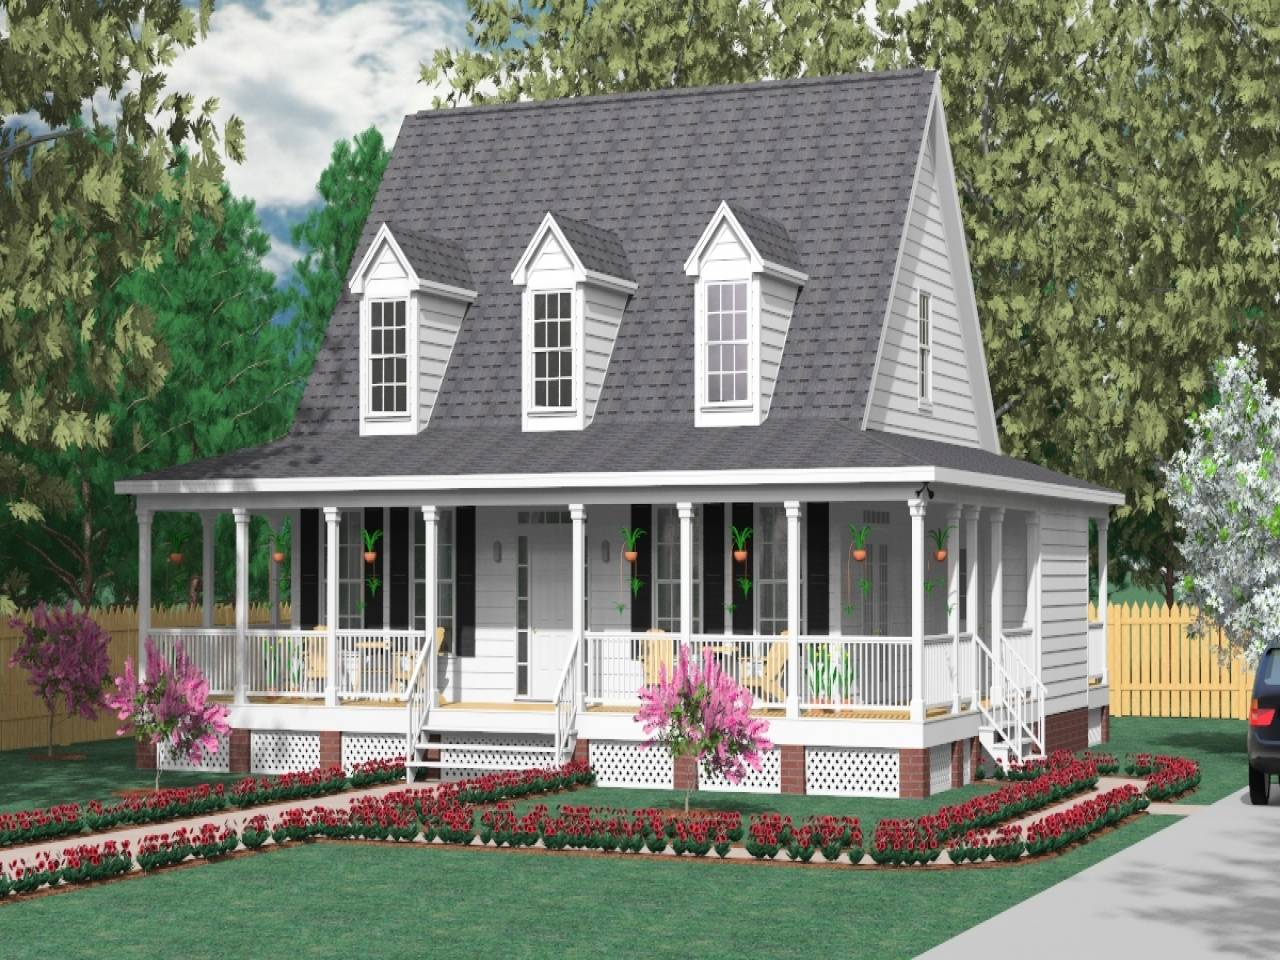 Wrap Around Porch House Plans Modern Small - House Plans | #144589